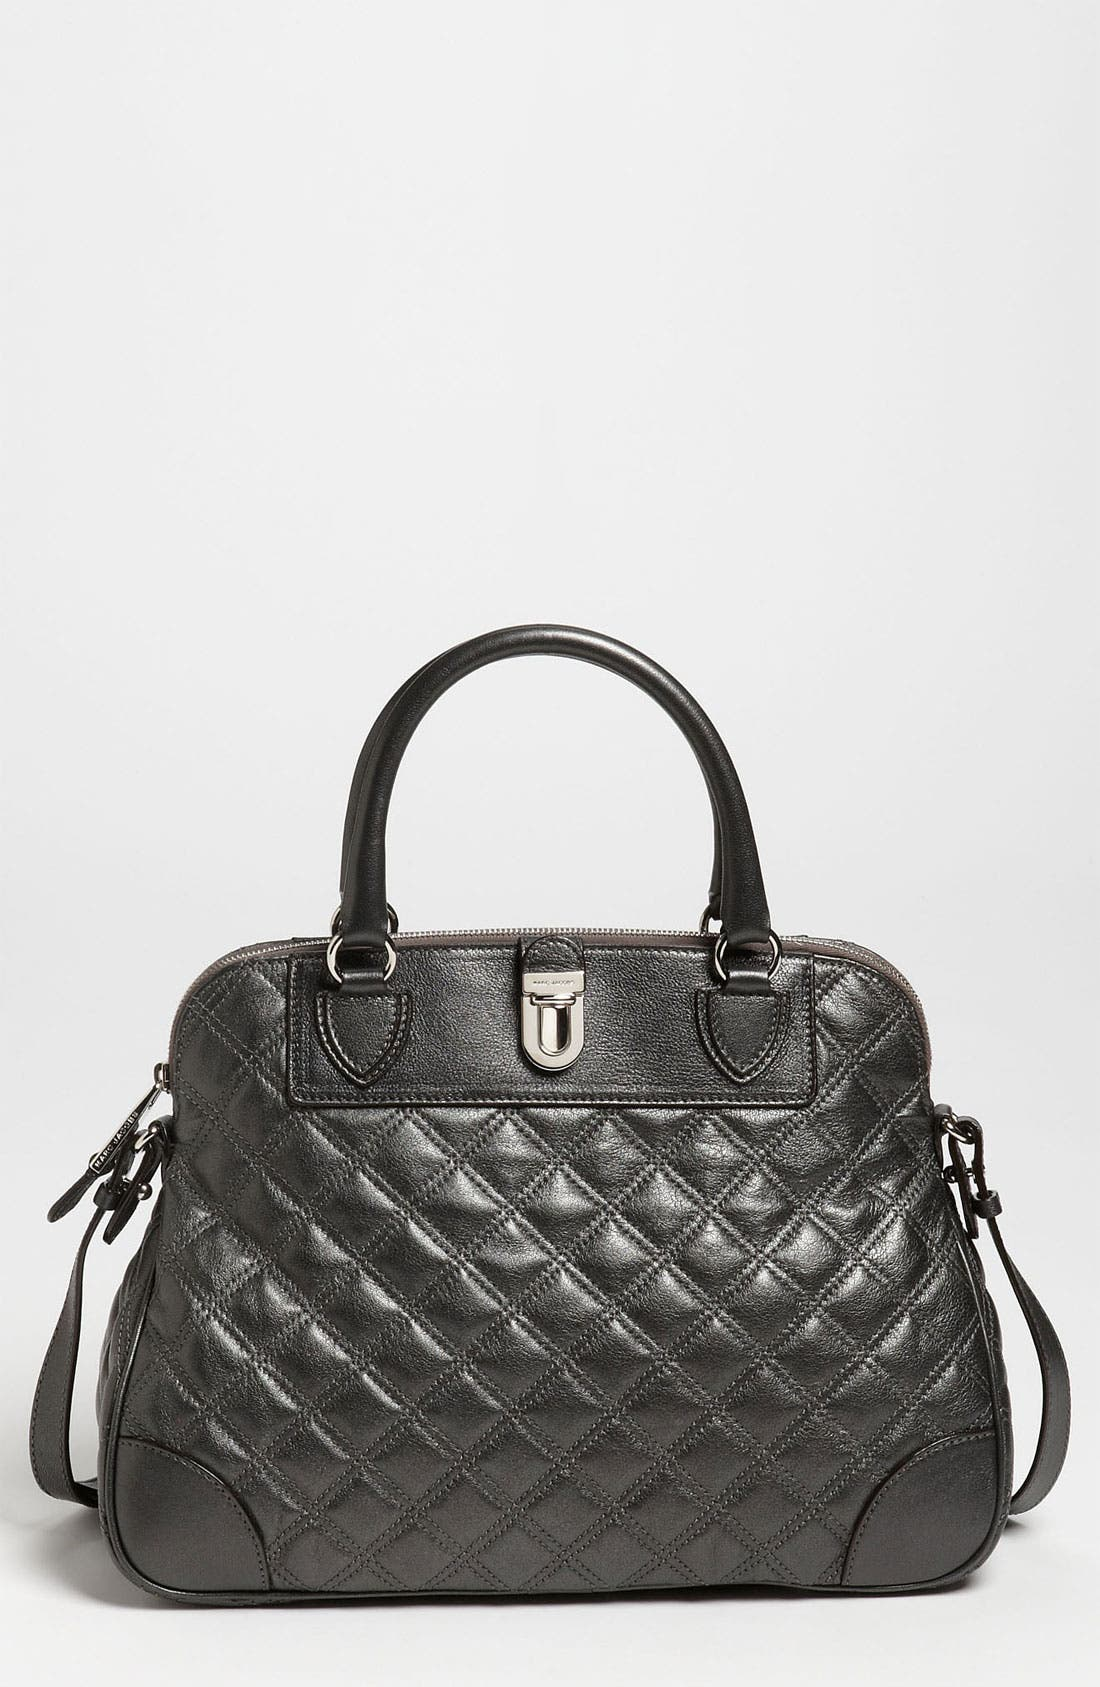 Main Image - MARC JACOBS 'Quilting Whitney' Leather Satchel